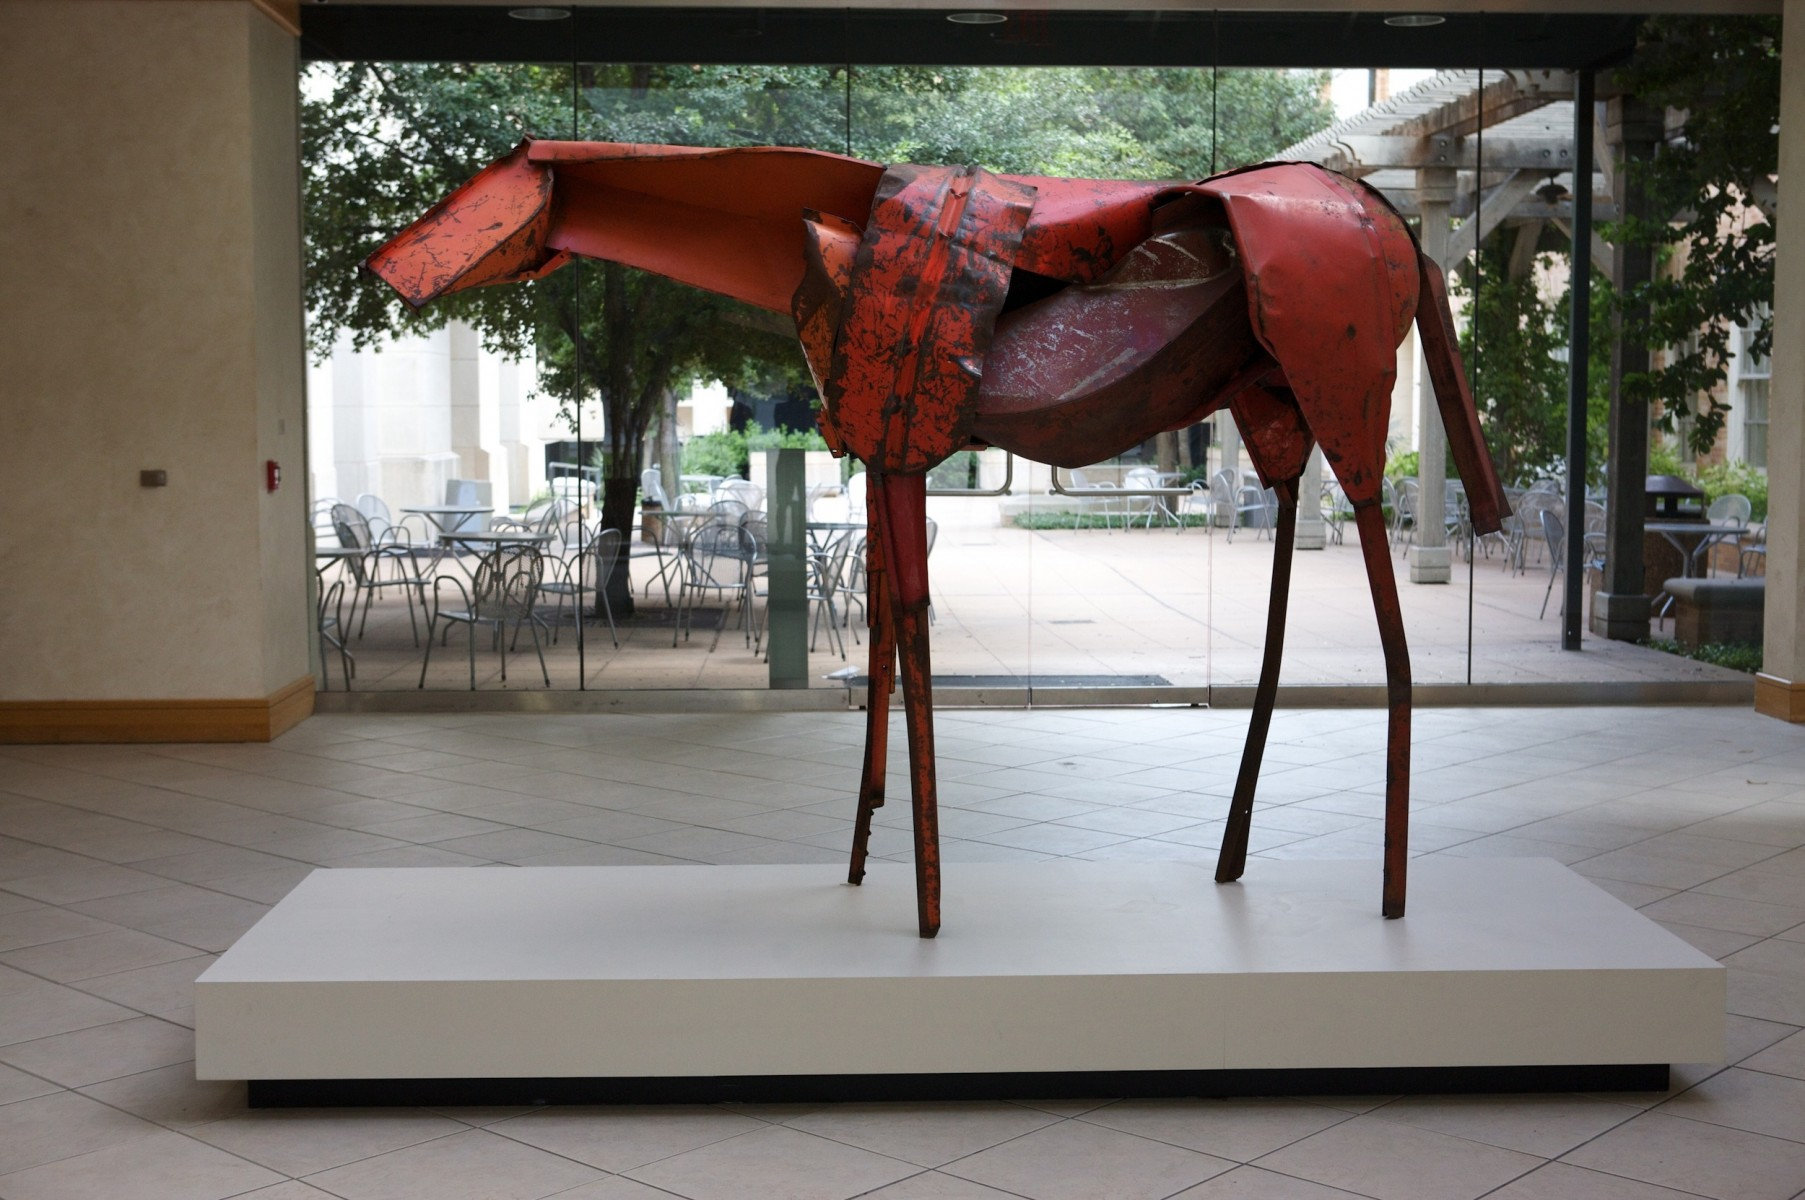 A red horse sculpture in front of a large window